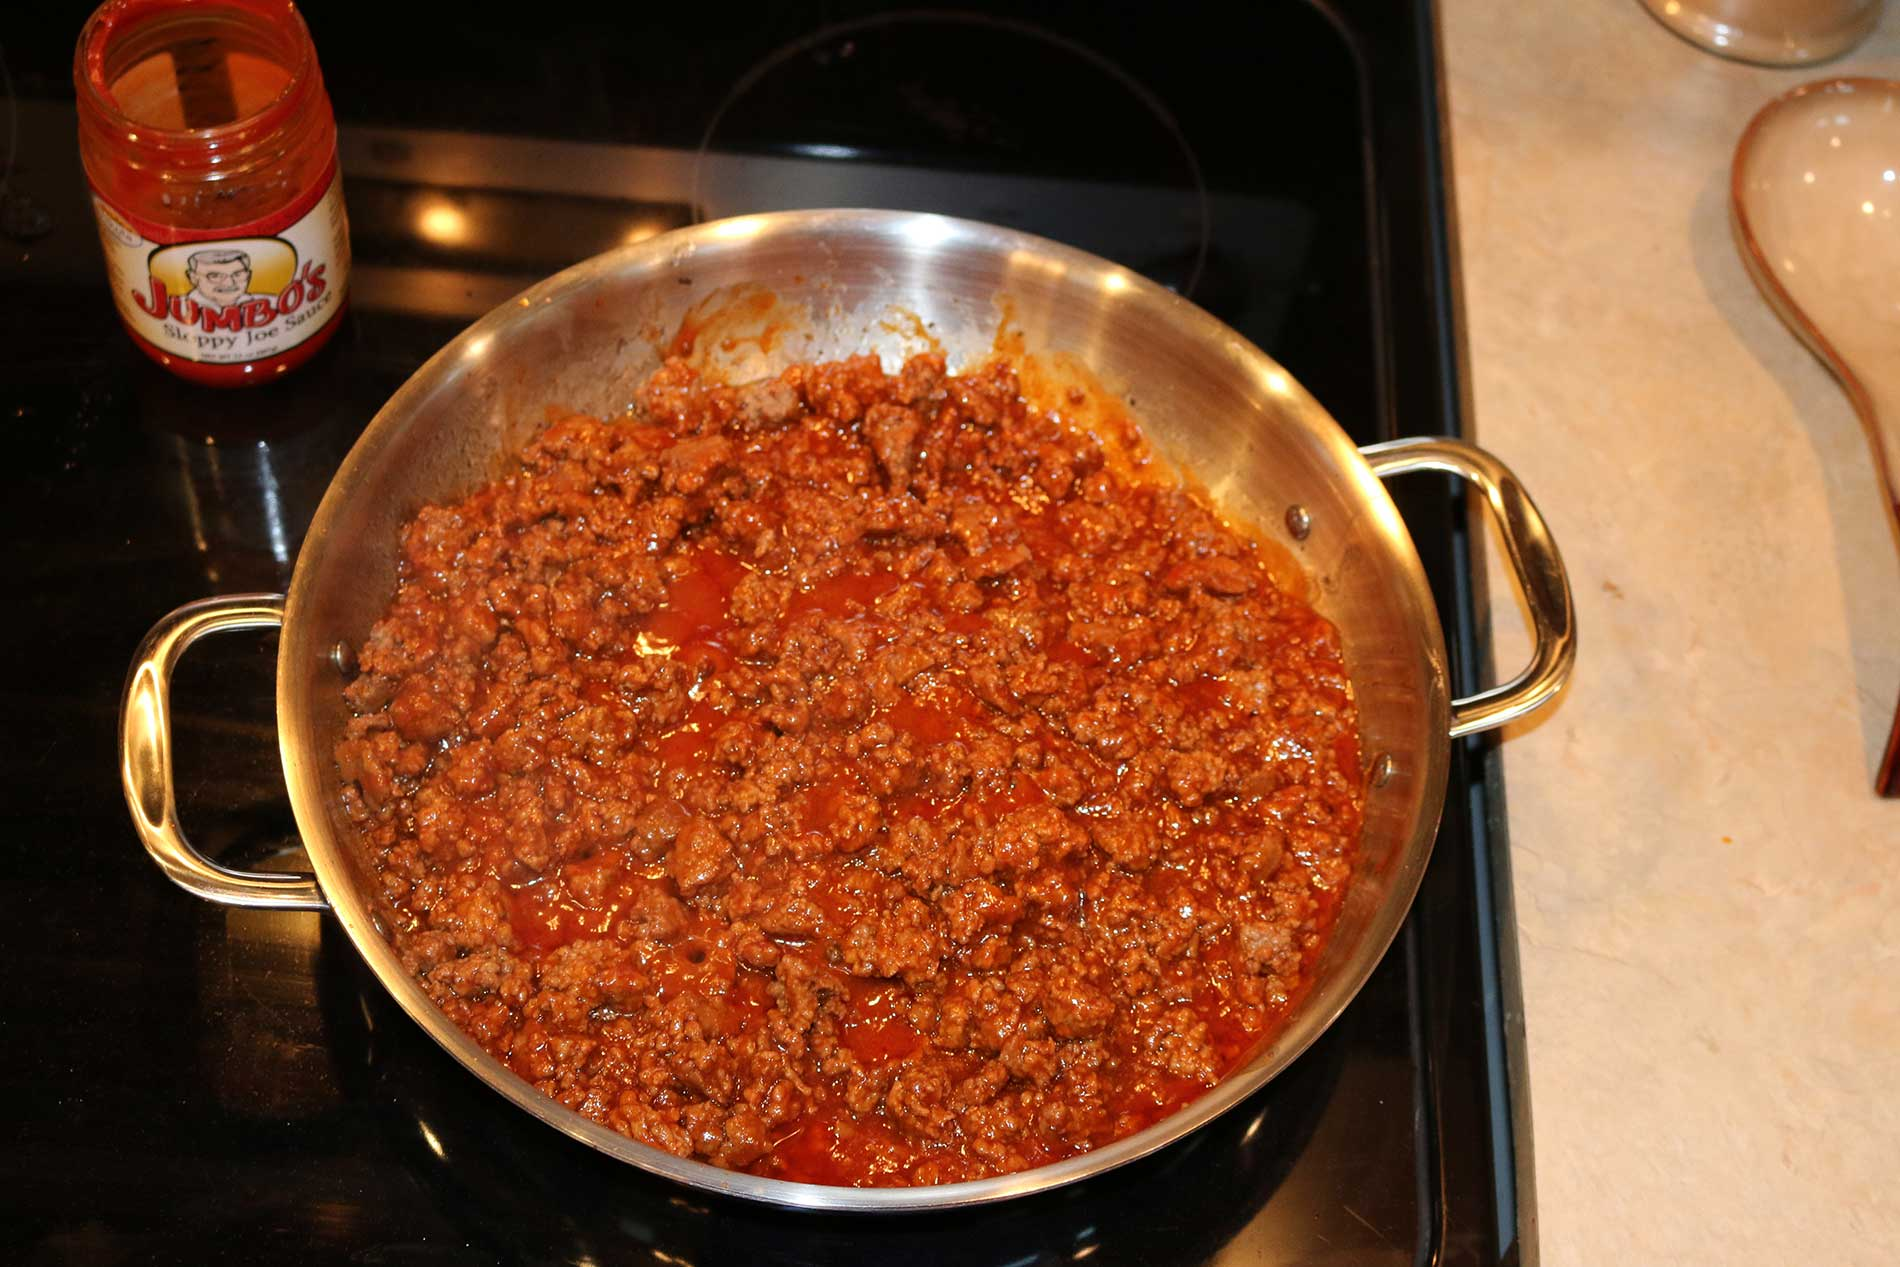 The meat and sauce being brought to a simmer.